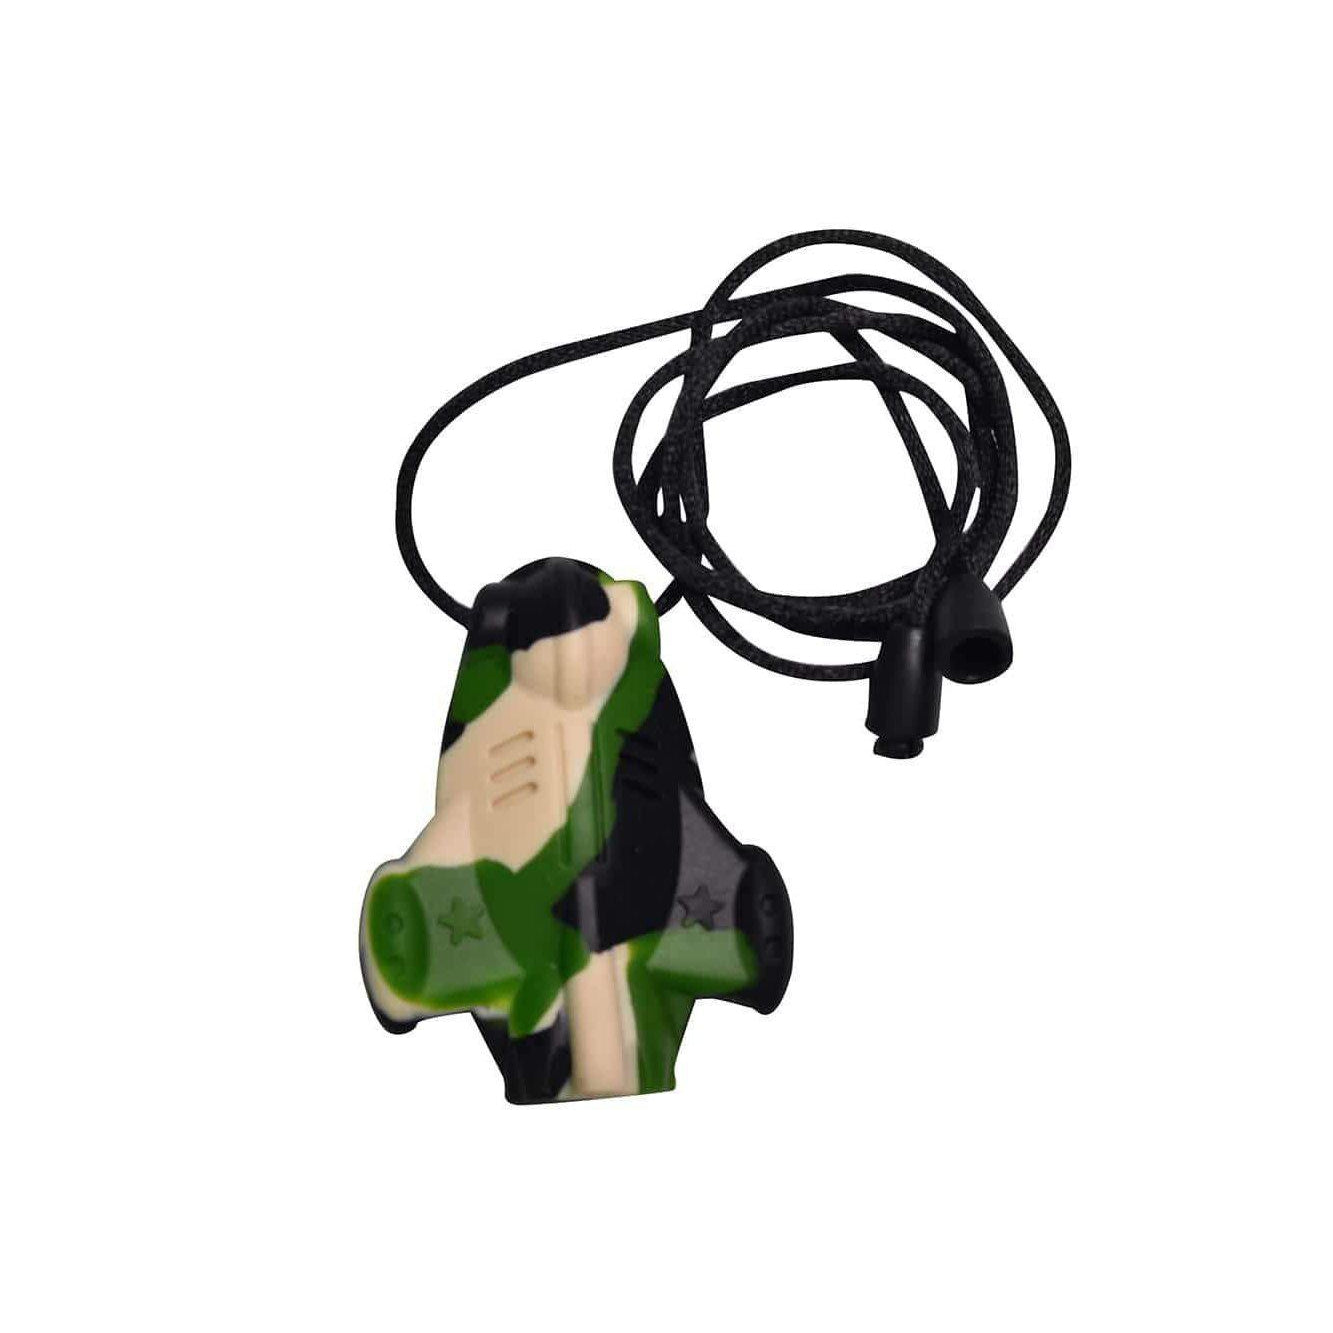 SpaceJet Chew Pendant With Break Away Clasp Necklace- Army Camo